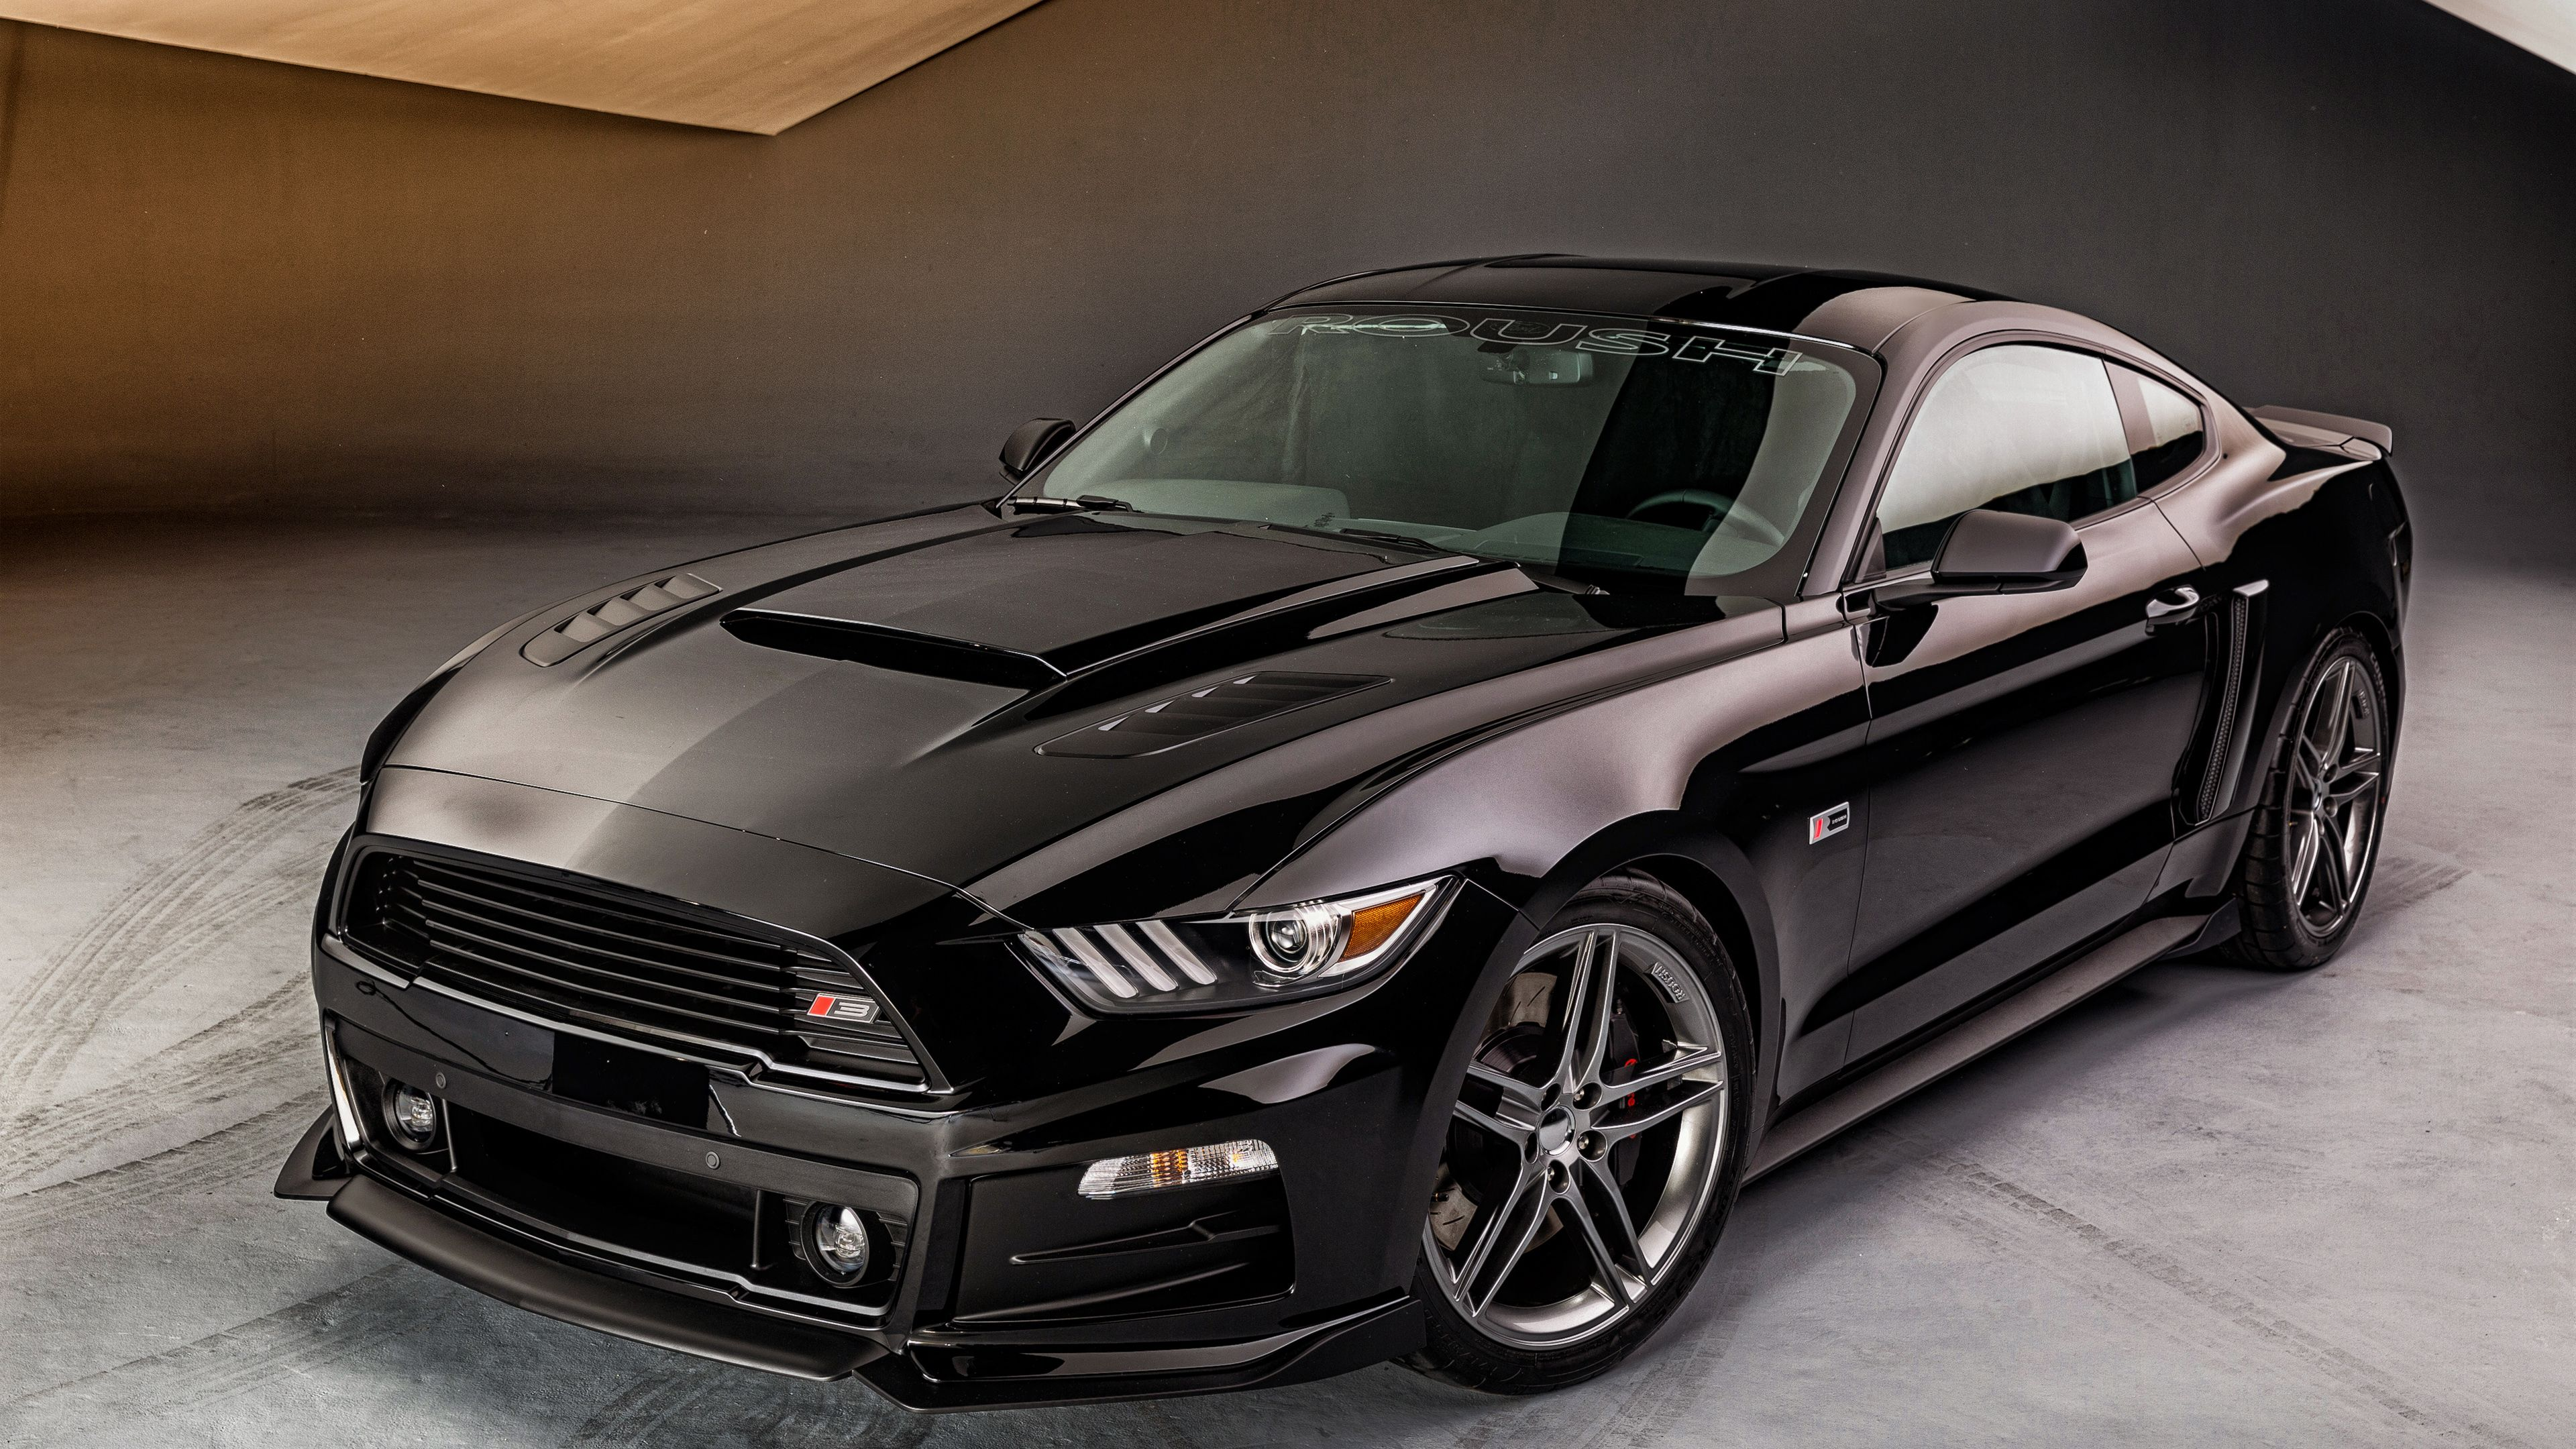 41 Best Free Sports Car Black Mustang Wallpapers